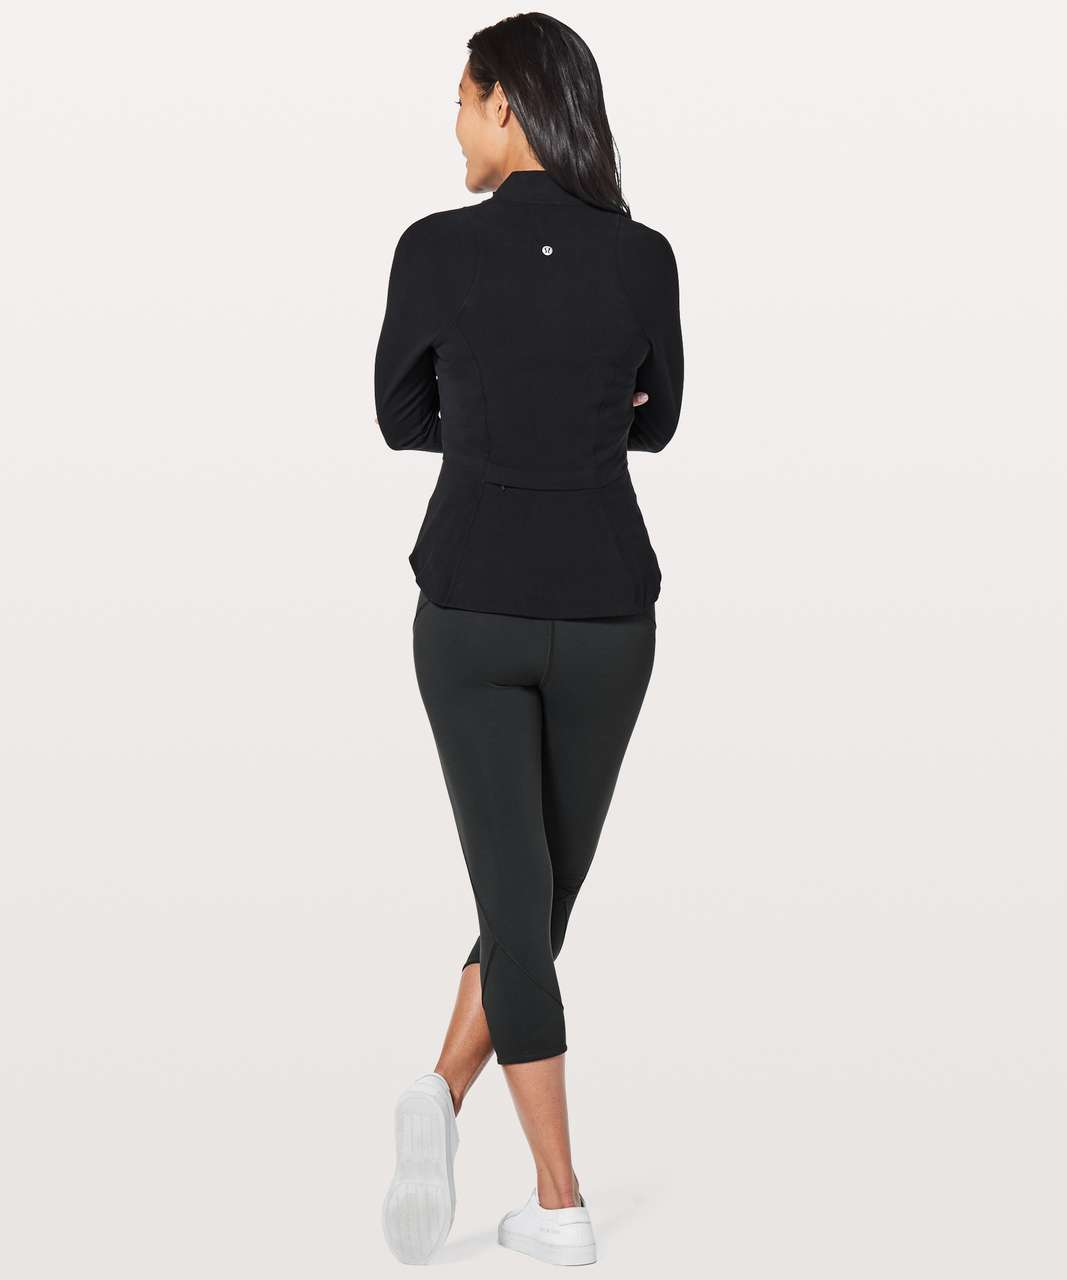 Lululemon The Ease Jacket - Black